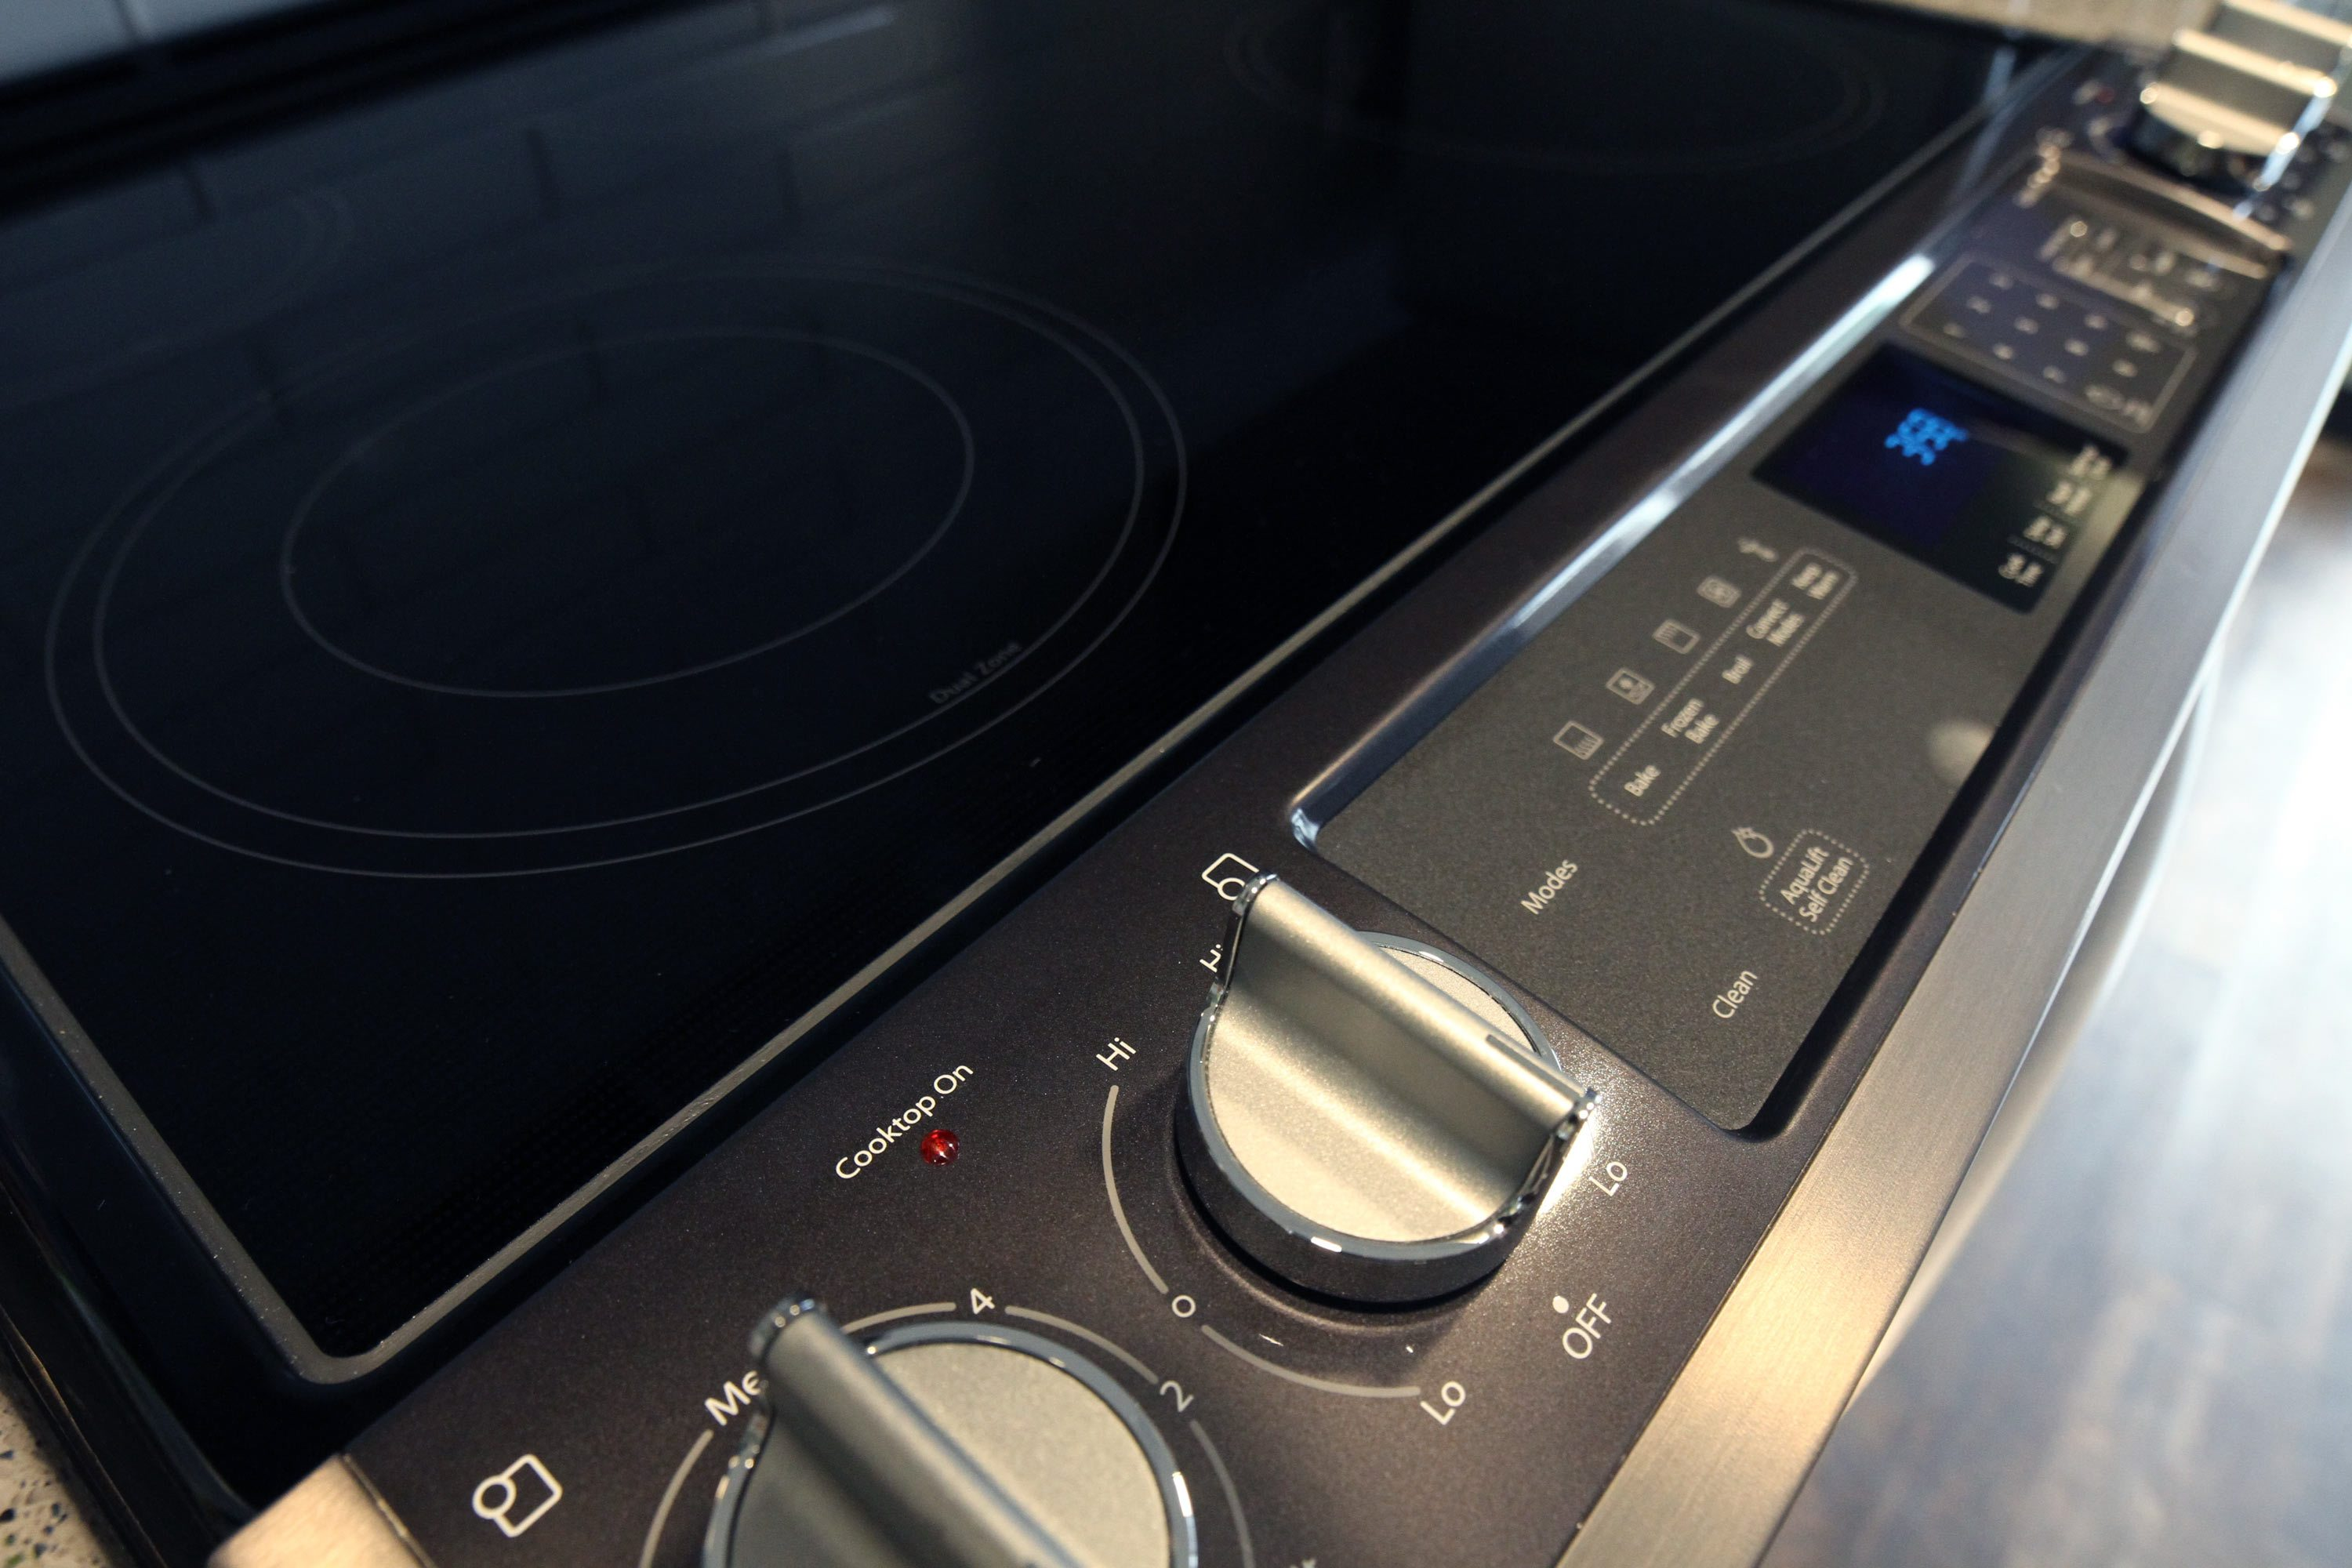 A close up image of a black stove cook top with stainless steel knobs